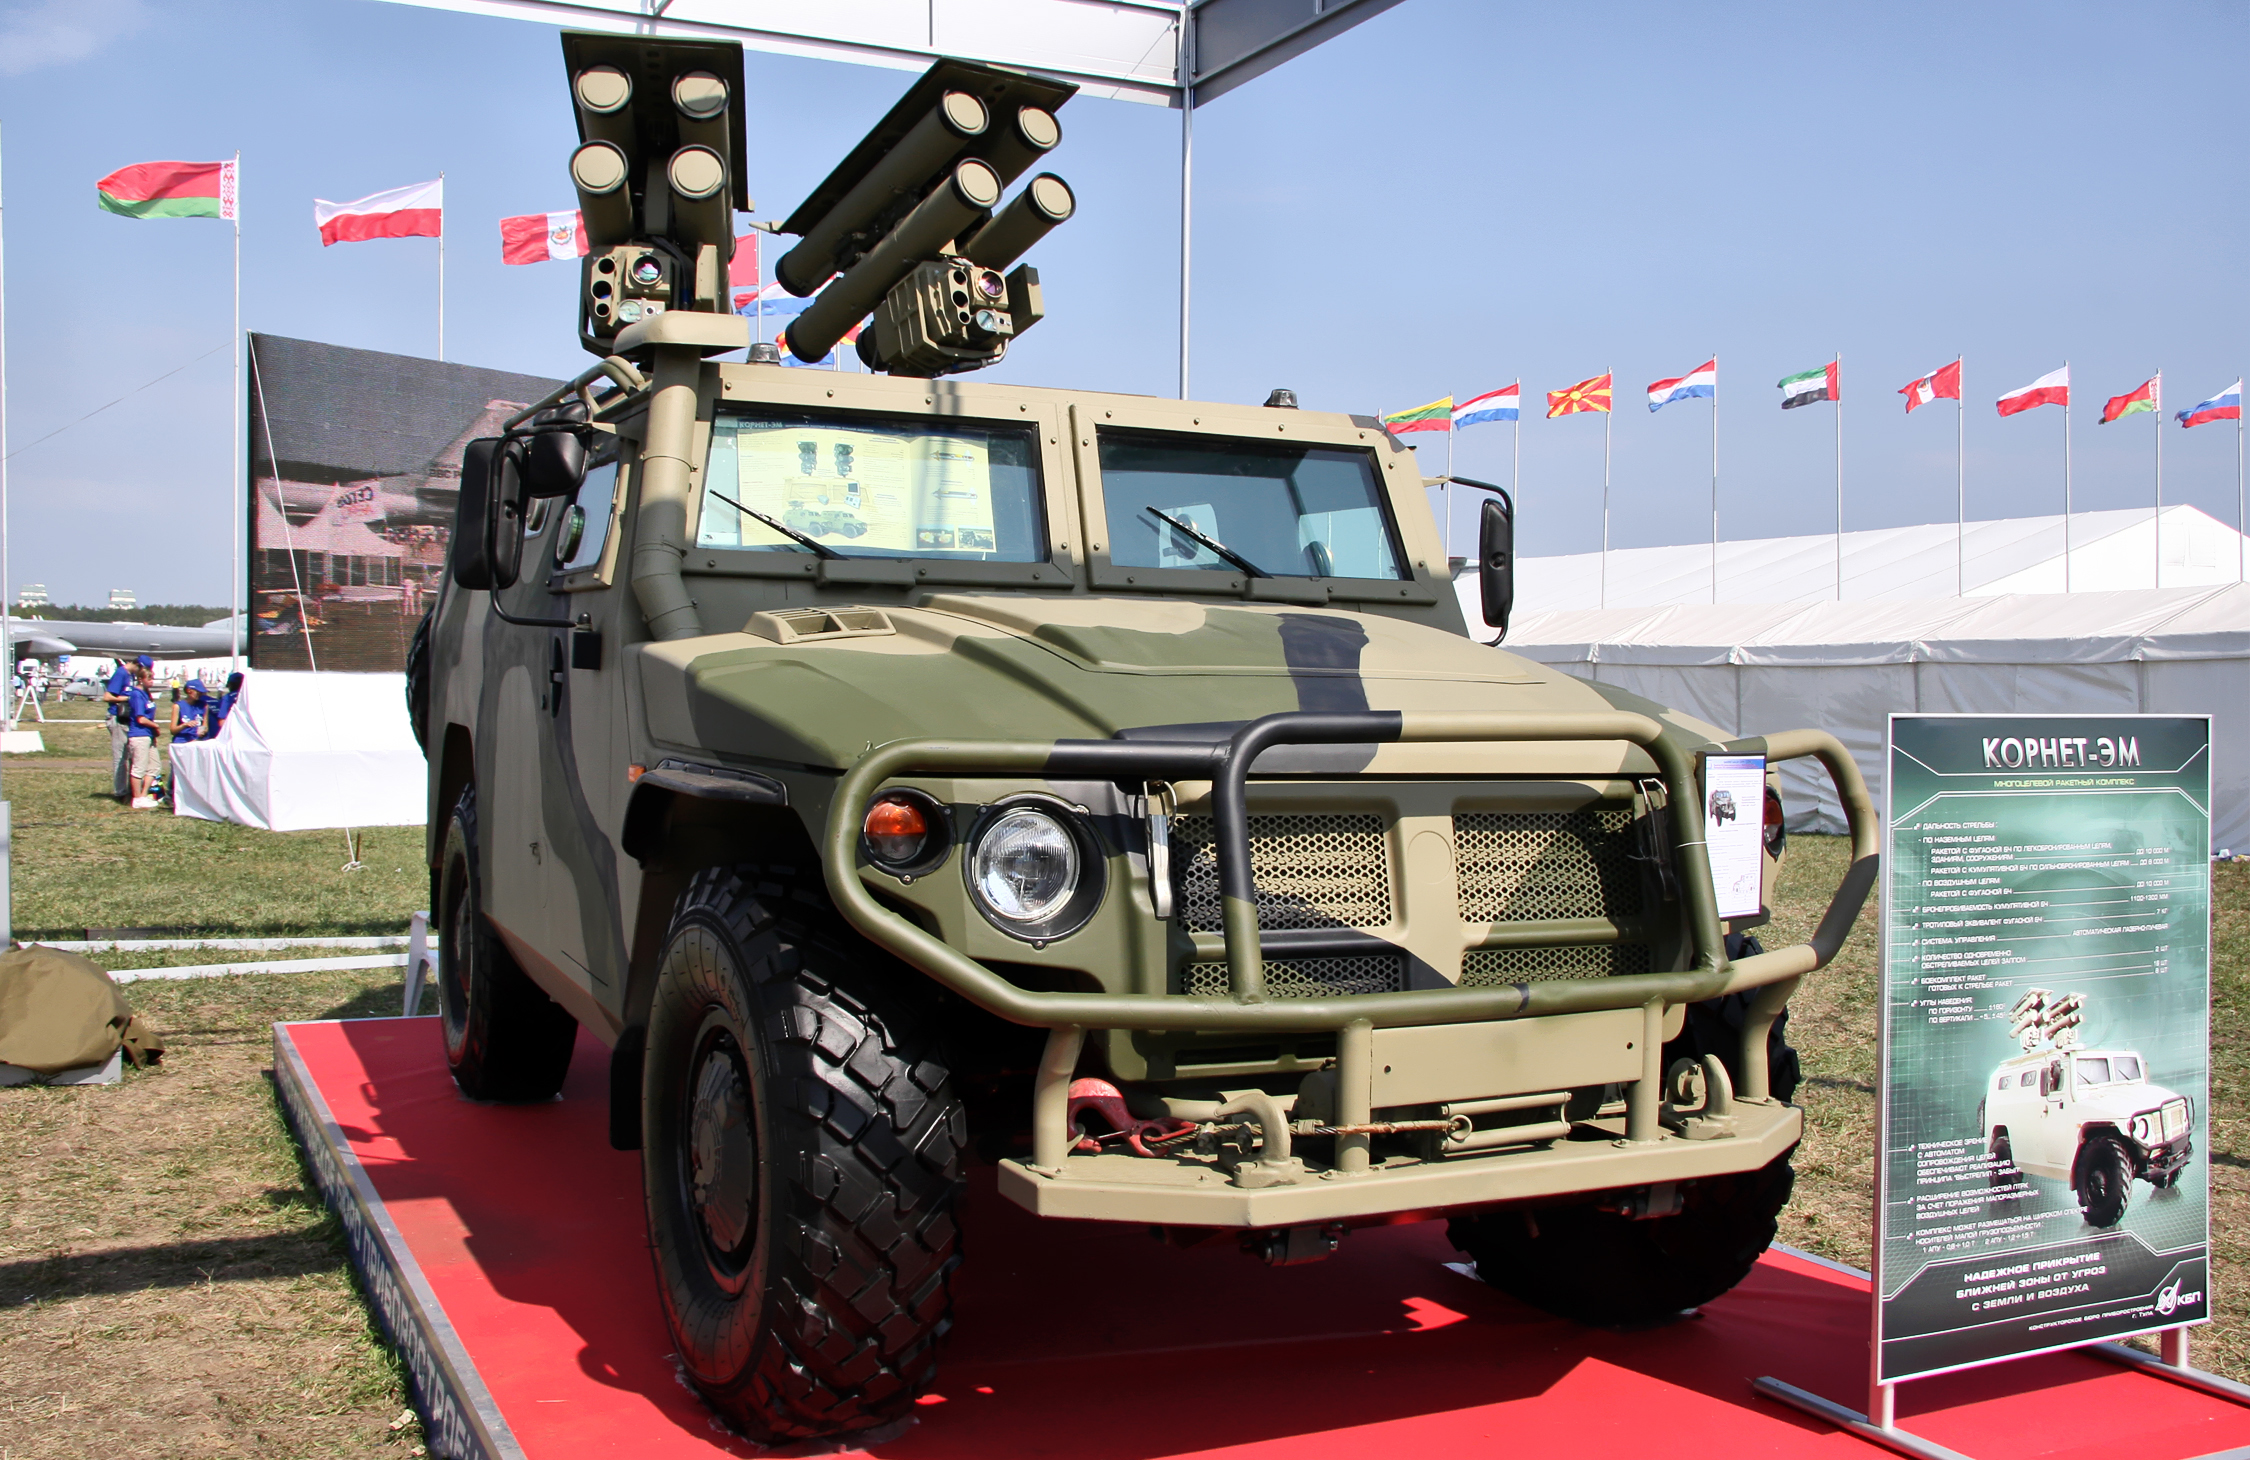 Russian Aerospace Forces Tested Newest Surface-to-Air Missile System